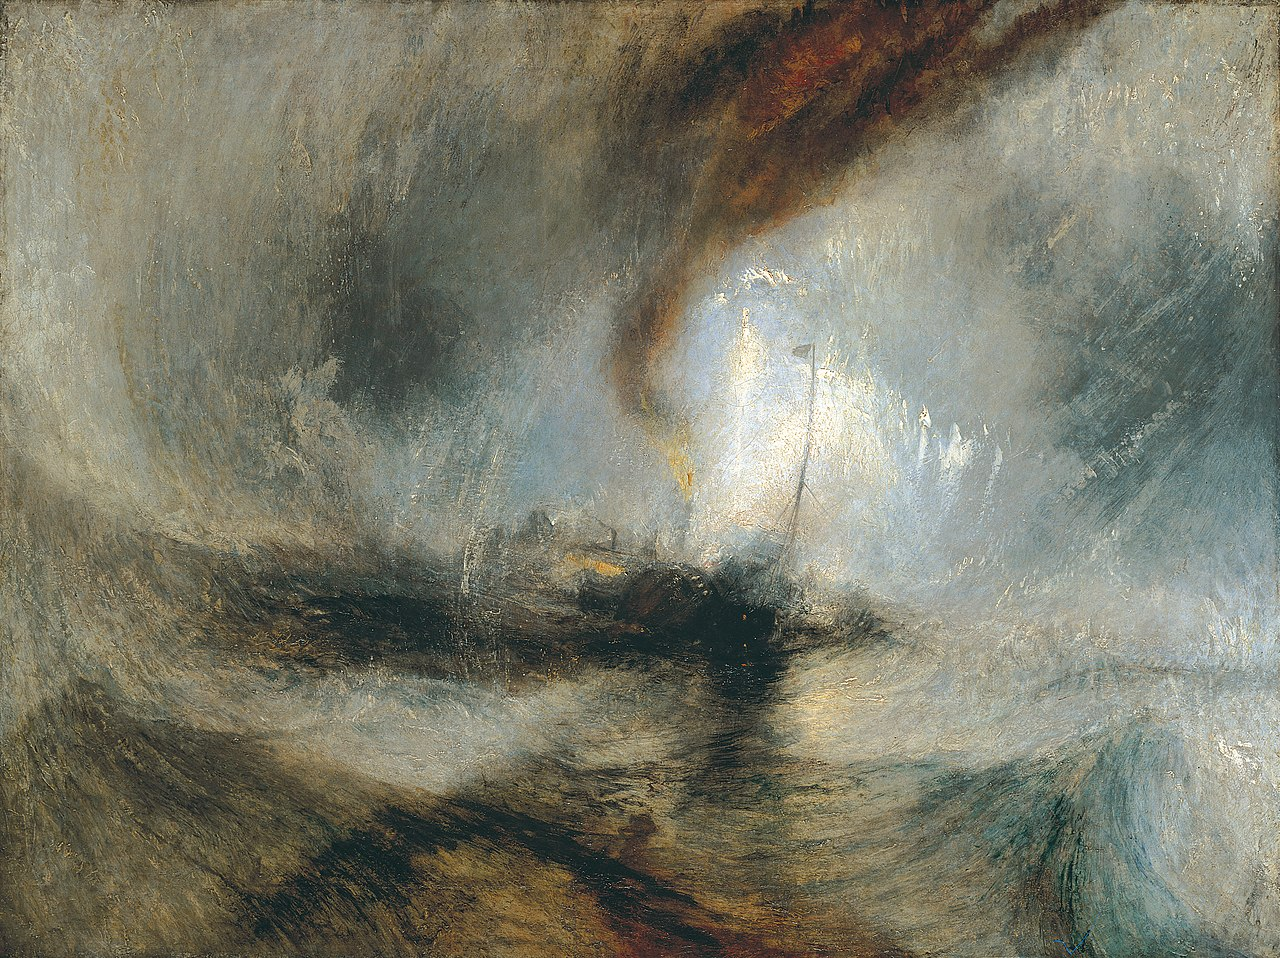 https://upload.wikimedia.org/wikipedia/commons/thumb/3/30/Joseph_Mallord_William_Turner_-_Snow_Storm_-_Steam-Boat_off_a_Harbour%27s_Mouth_-_WGA23178.jpg/1280px-Joseph_Mallord_William_Turner_-_Snow_Storm_-_Steam-Boat_off_a_Harbour%27s_Mouth_-_WGA23178.jpg